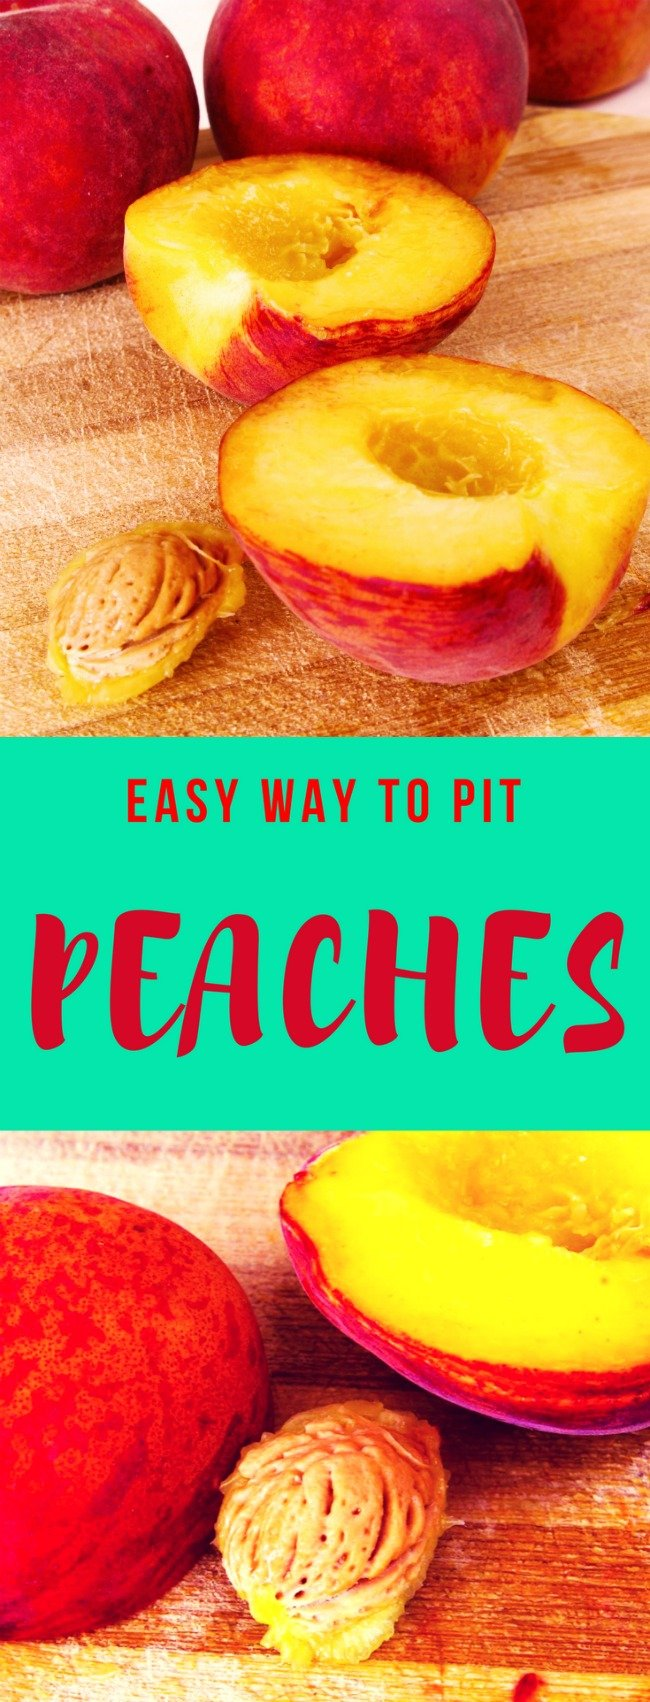 How to pit peaches easily